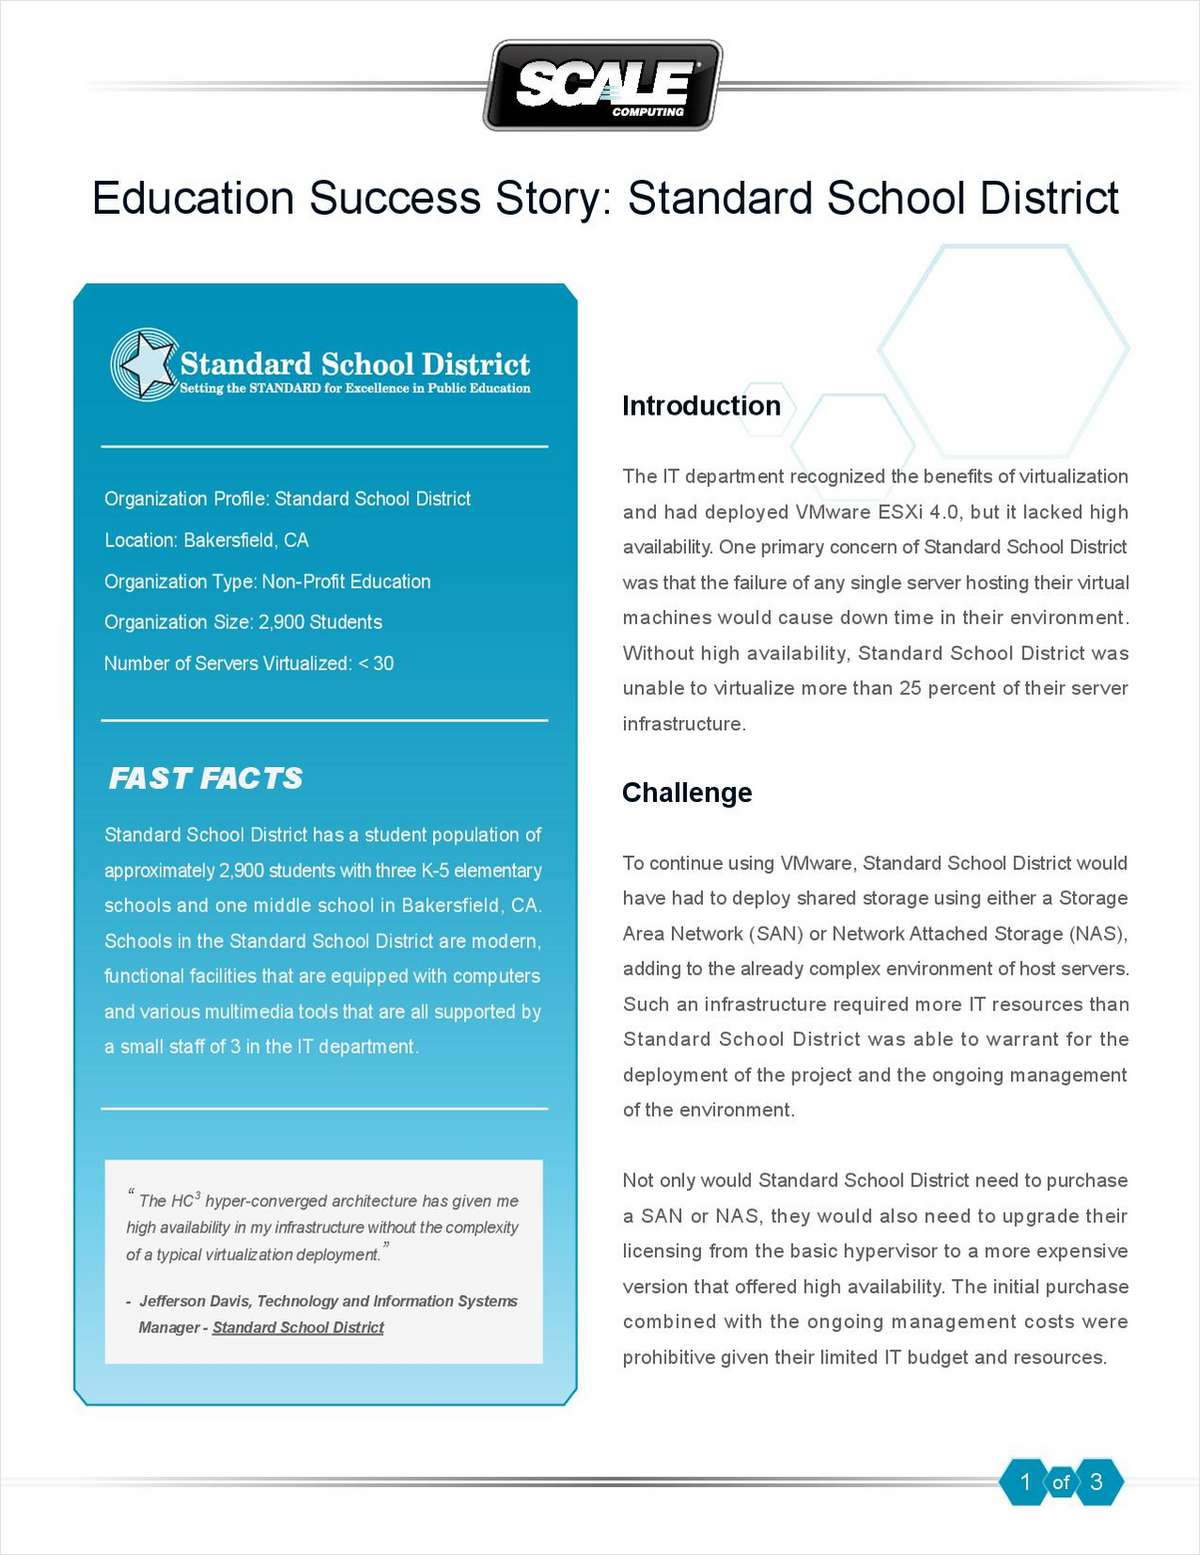 Education Success Story: Standard School District